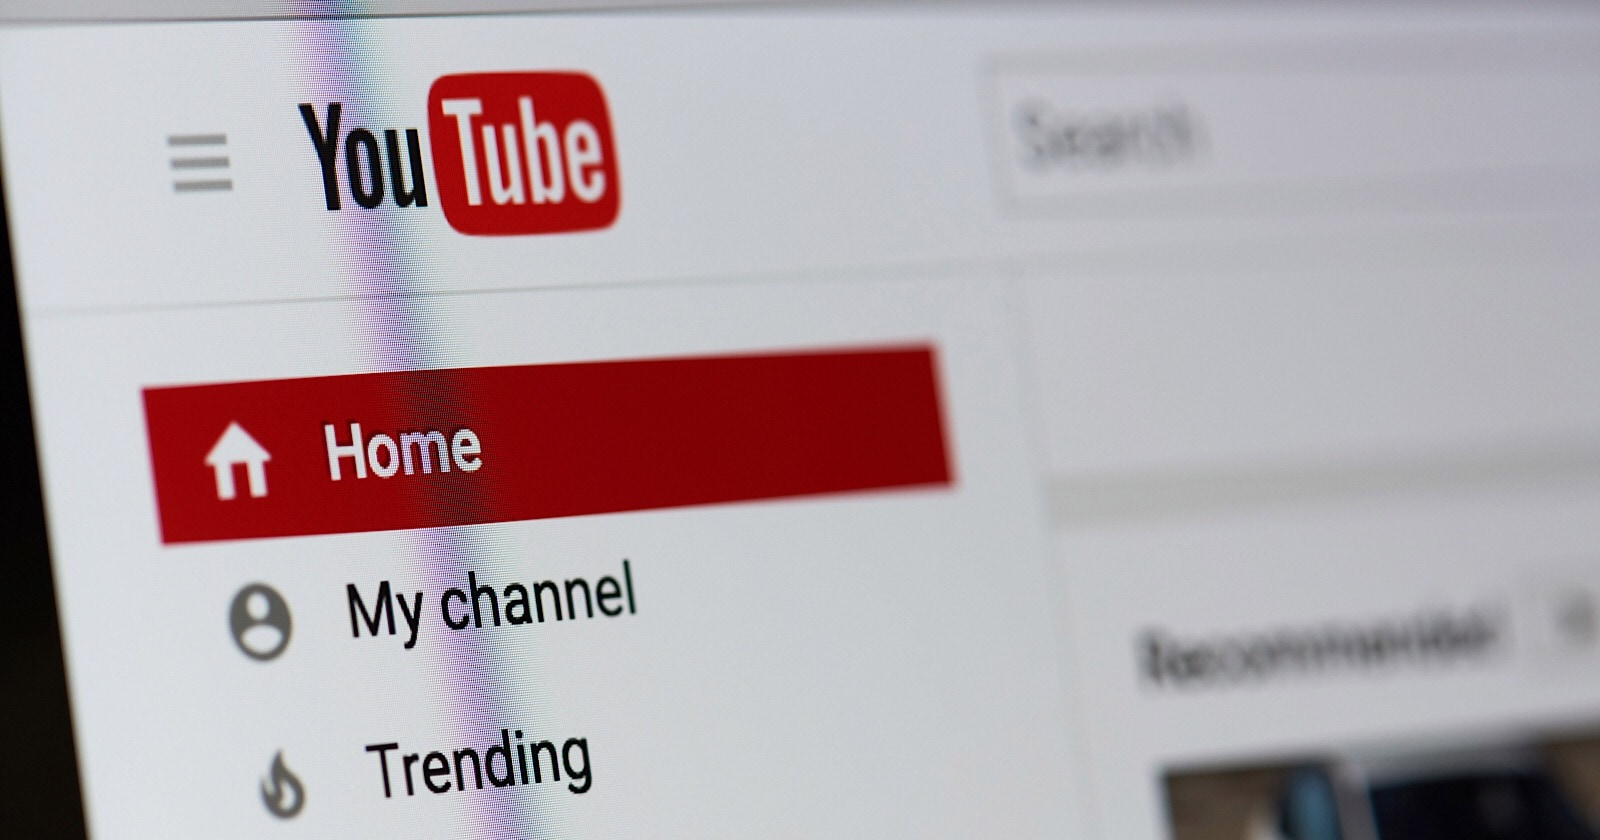 https://www.searchenginejournal.com/youtube-changes-rules-regarding-videos-external-links/216907/